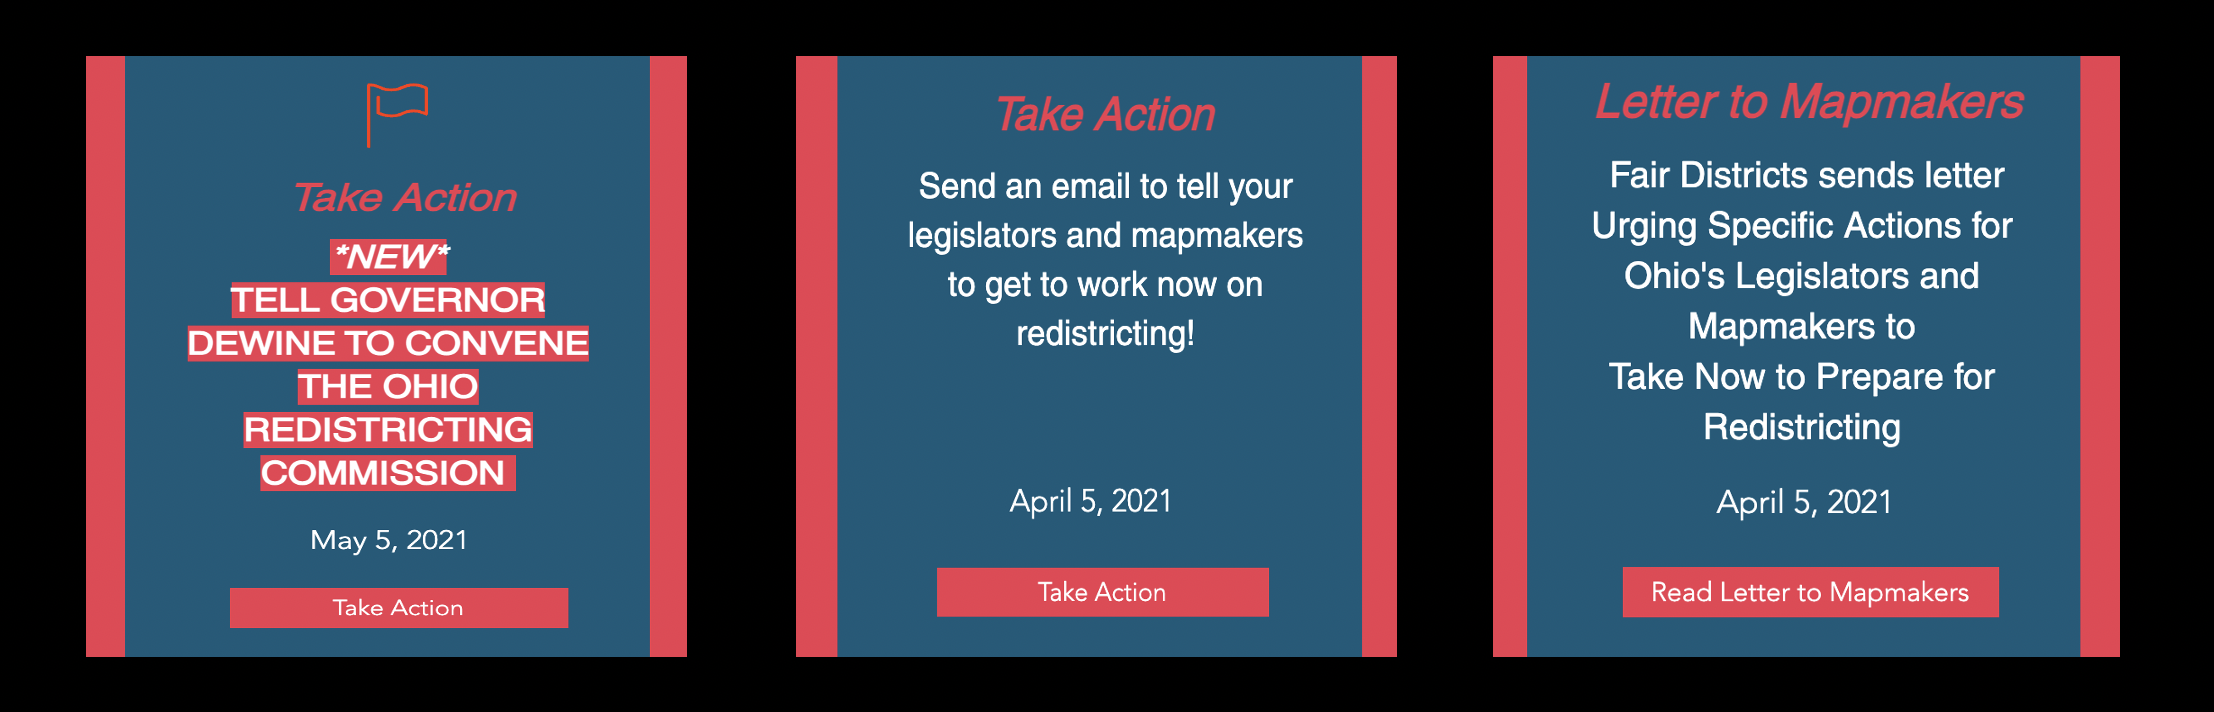 Fair Districts encourages volunteers to fight gerrymandering, legislative advocacy and drawing community maps for redistricting.